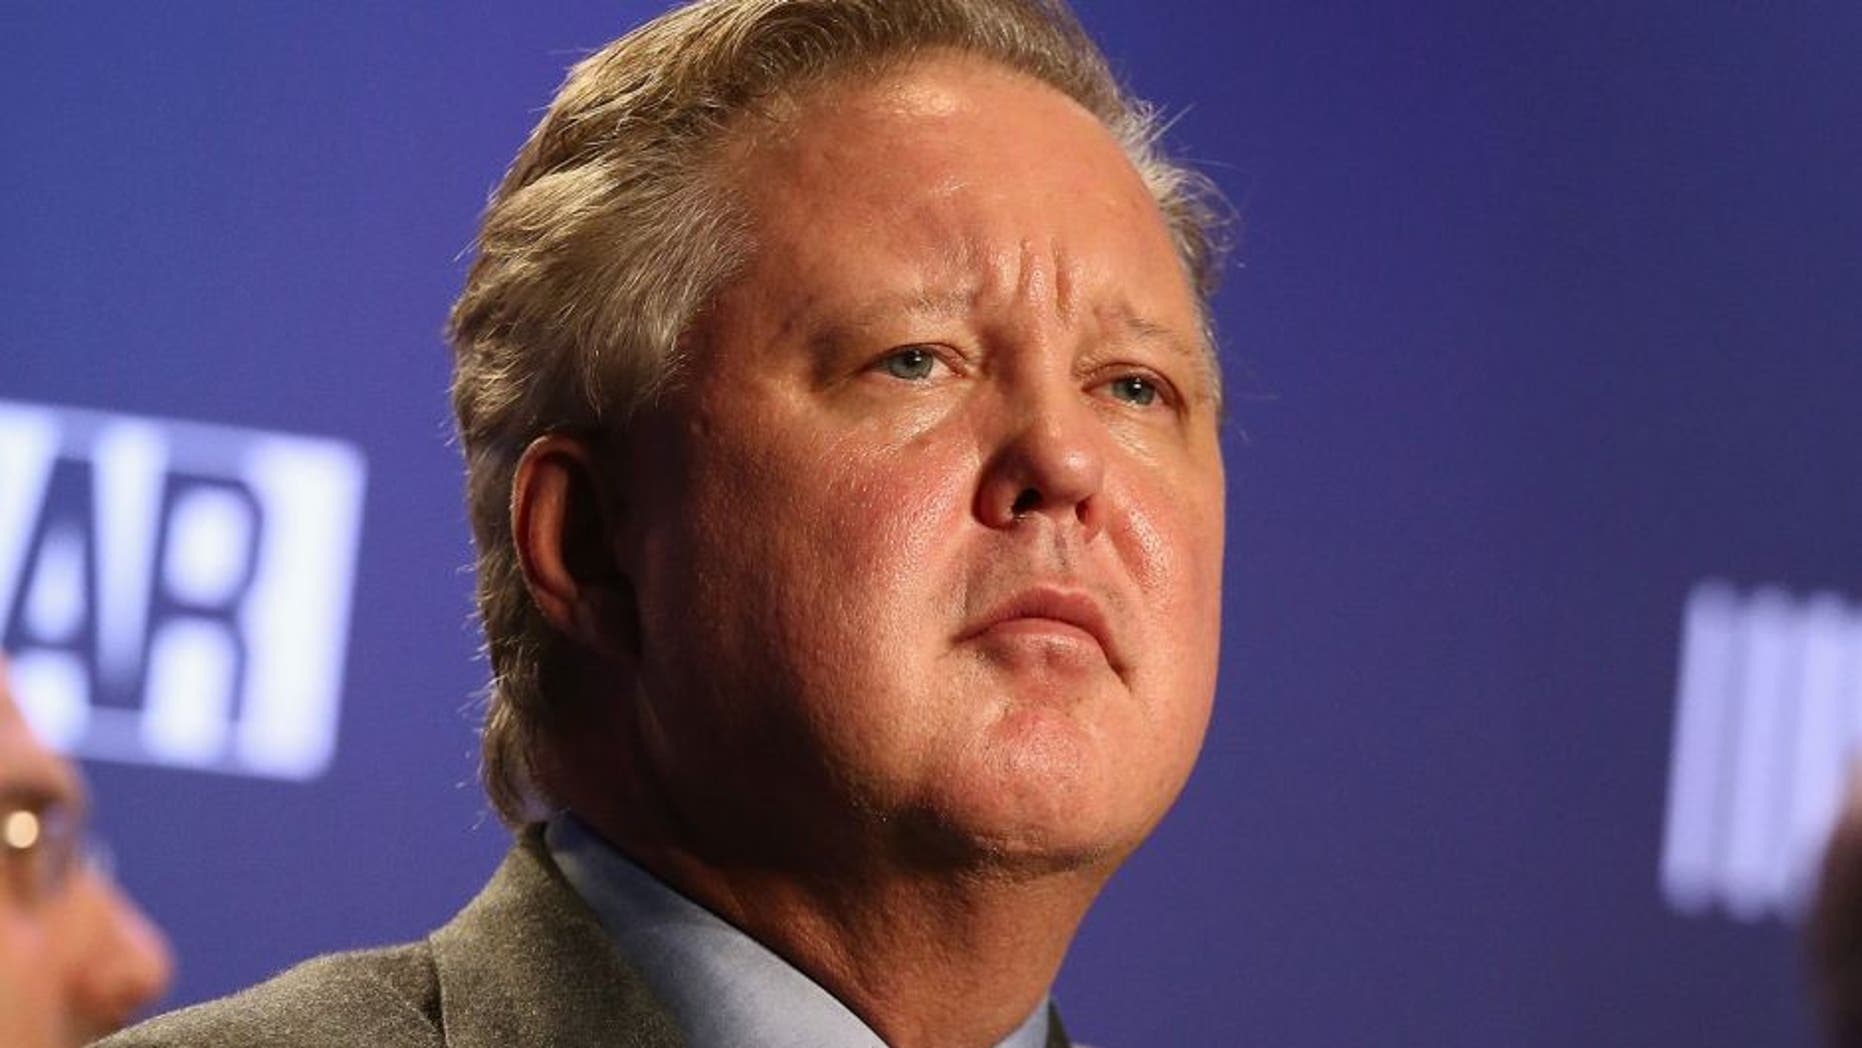 CHARLOTTE, NC - FEBRUARY 09: CEO and Chairman of NASCAR Brian France addresses the media at Charlotte Convention Center on February 9, 2016 in Charlotte, North Carolina. (Photo by Gregg Forwerck/NASCAR via Getty Images)